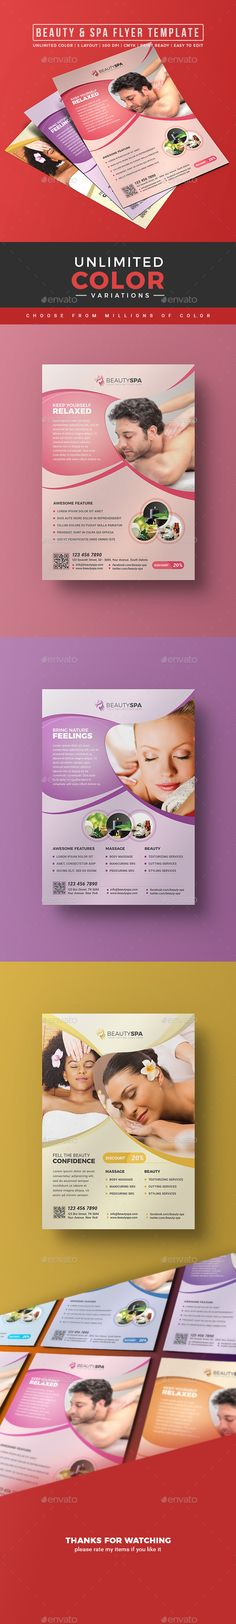 107 best Spa Flyer images on Pinterest Font logo, Fonts and - flyer samples for an event